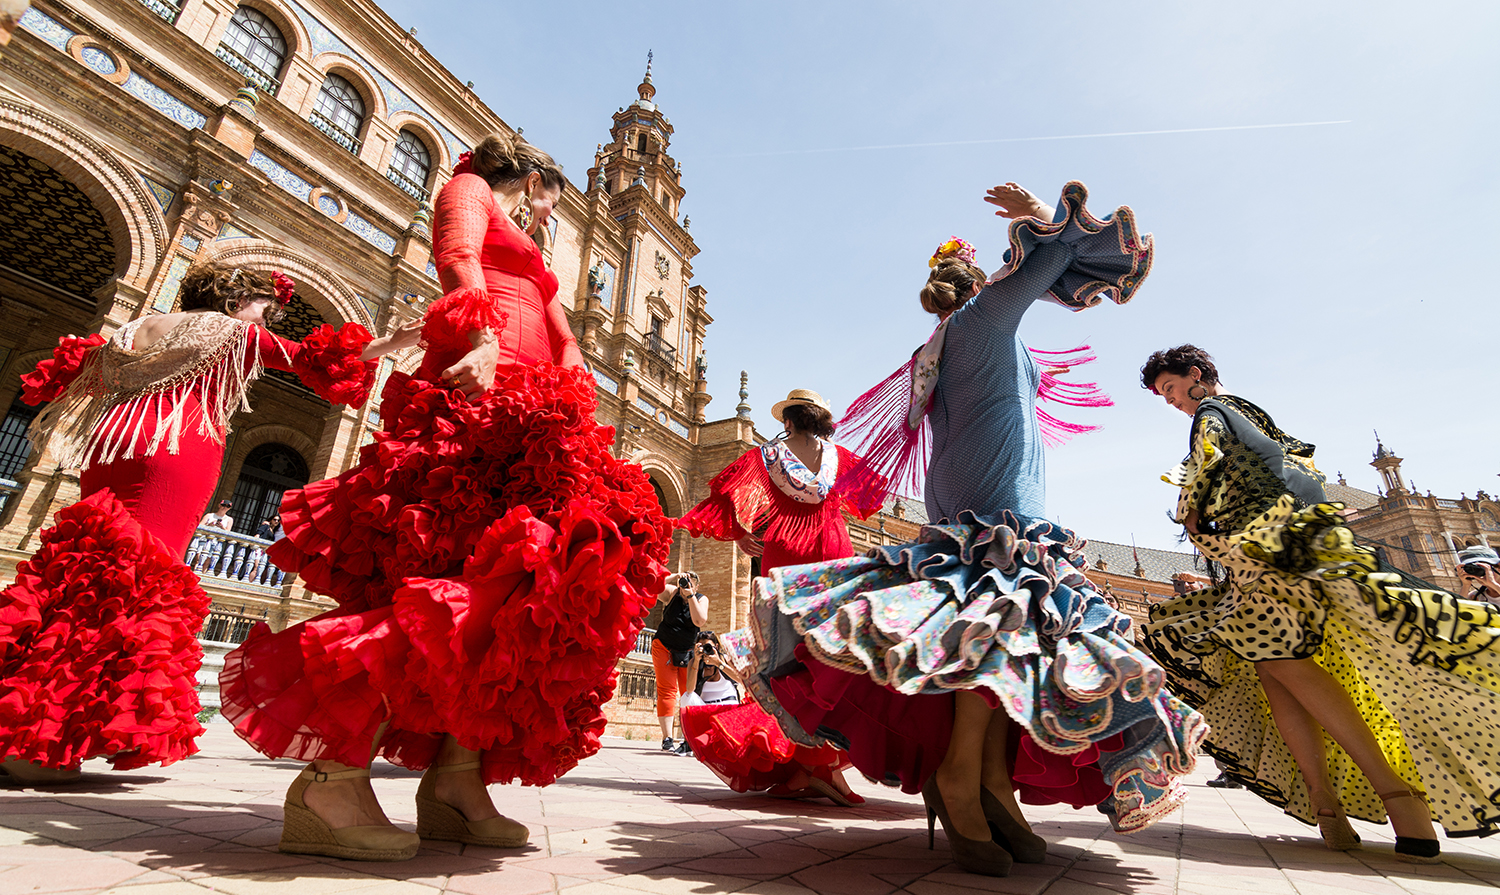 spain-flamenco-dancers-seville-spain